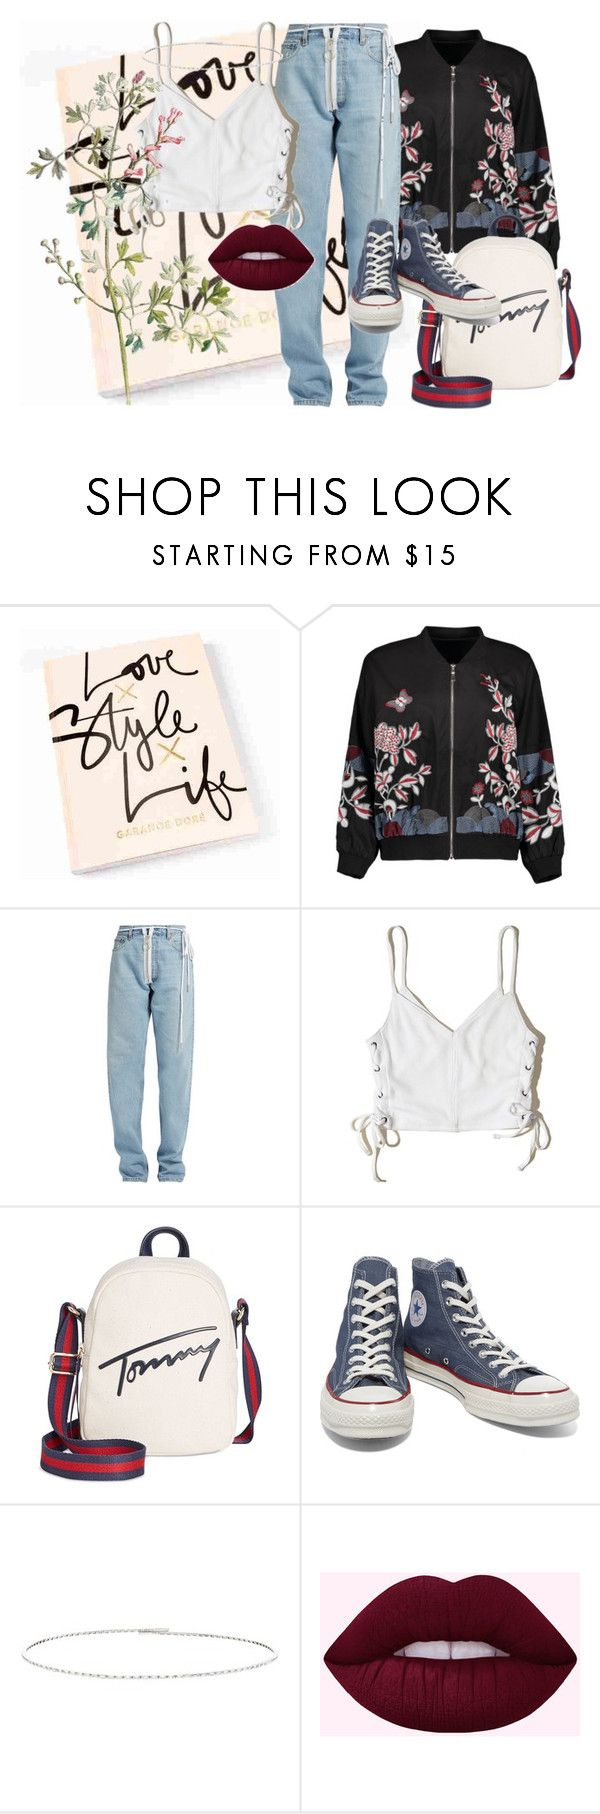 """""""bass"""" by personalnightmare ❤ liked on Polyvore featuring Off-White, Hollister Co., Tommy Hilfiger, Converse and Suzanne Kalan"""